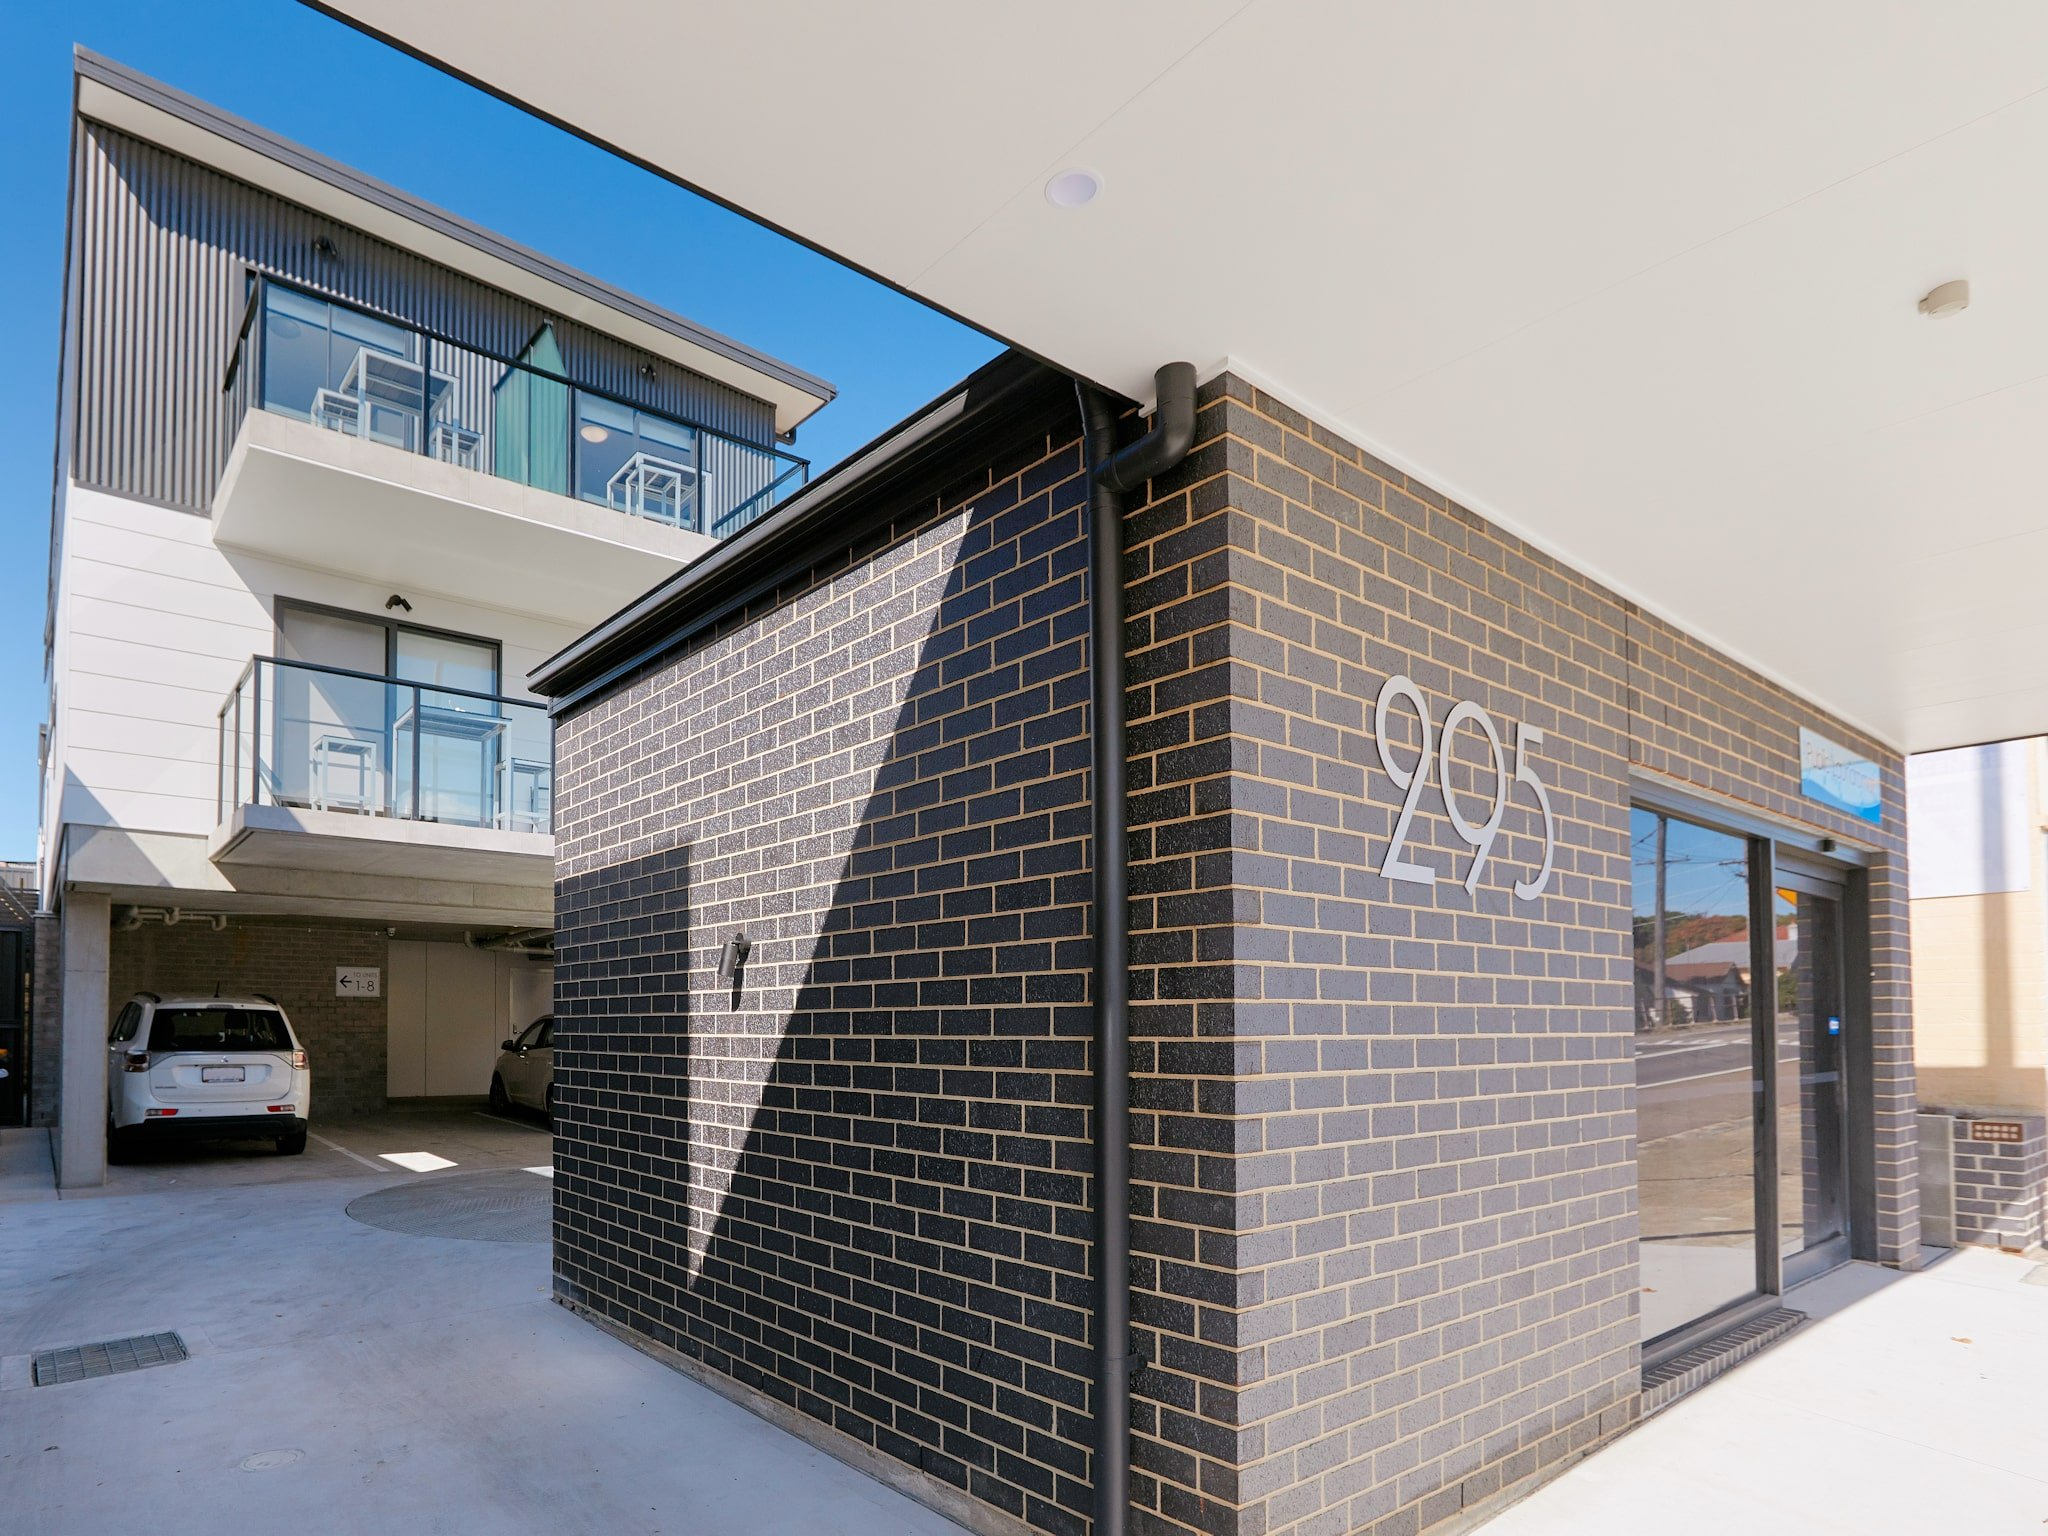 Alfred Apartments - https://www.newcastleapartments.com.au/wp-content/uploads/2019/08/AA-Exterior-2mb.jpg